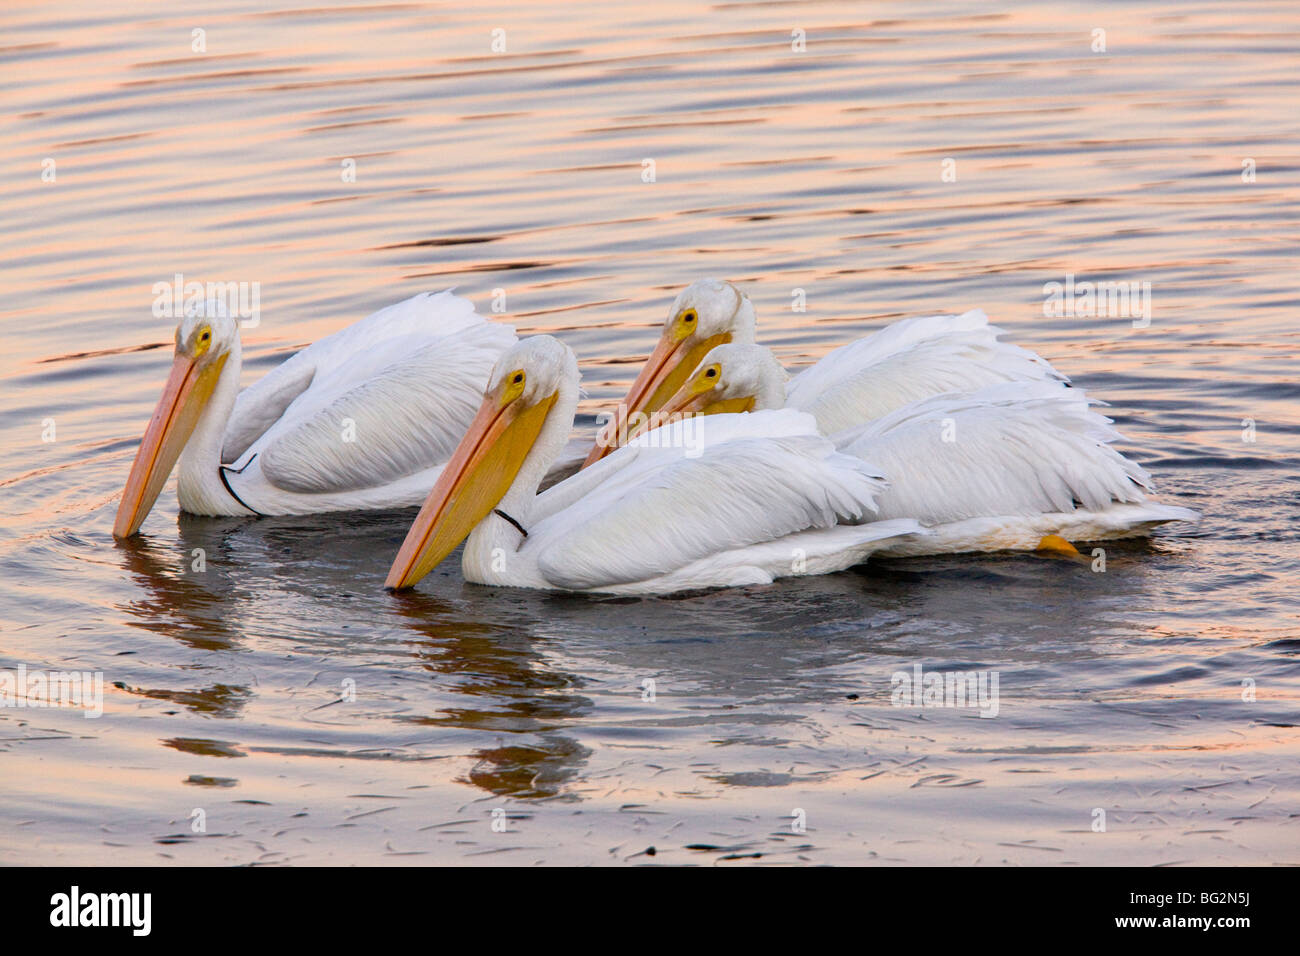 Group of American White Pelicans Pelecanus erythrorhynchos, feeding collectively at sunset; Bodega Bay, California, Stock Photo